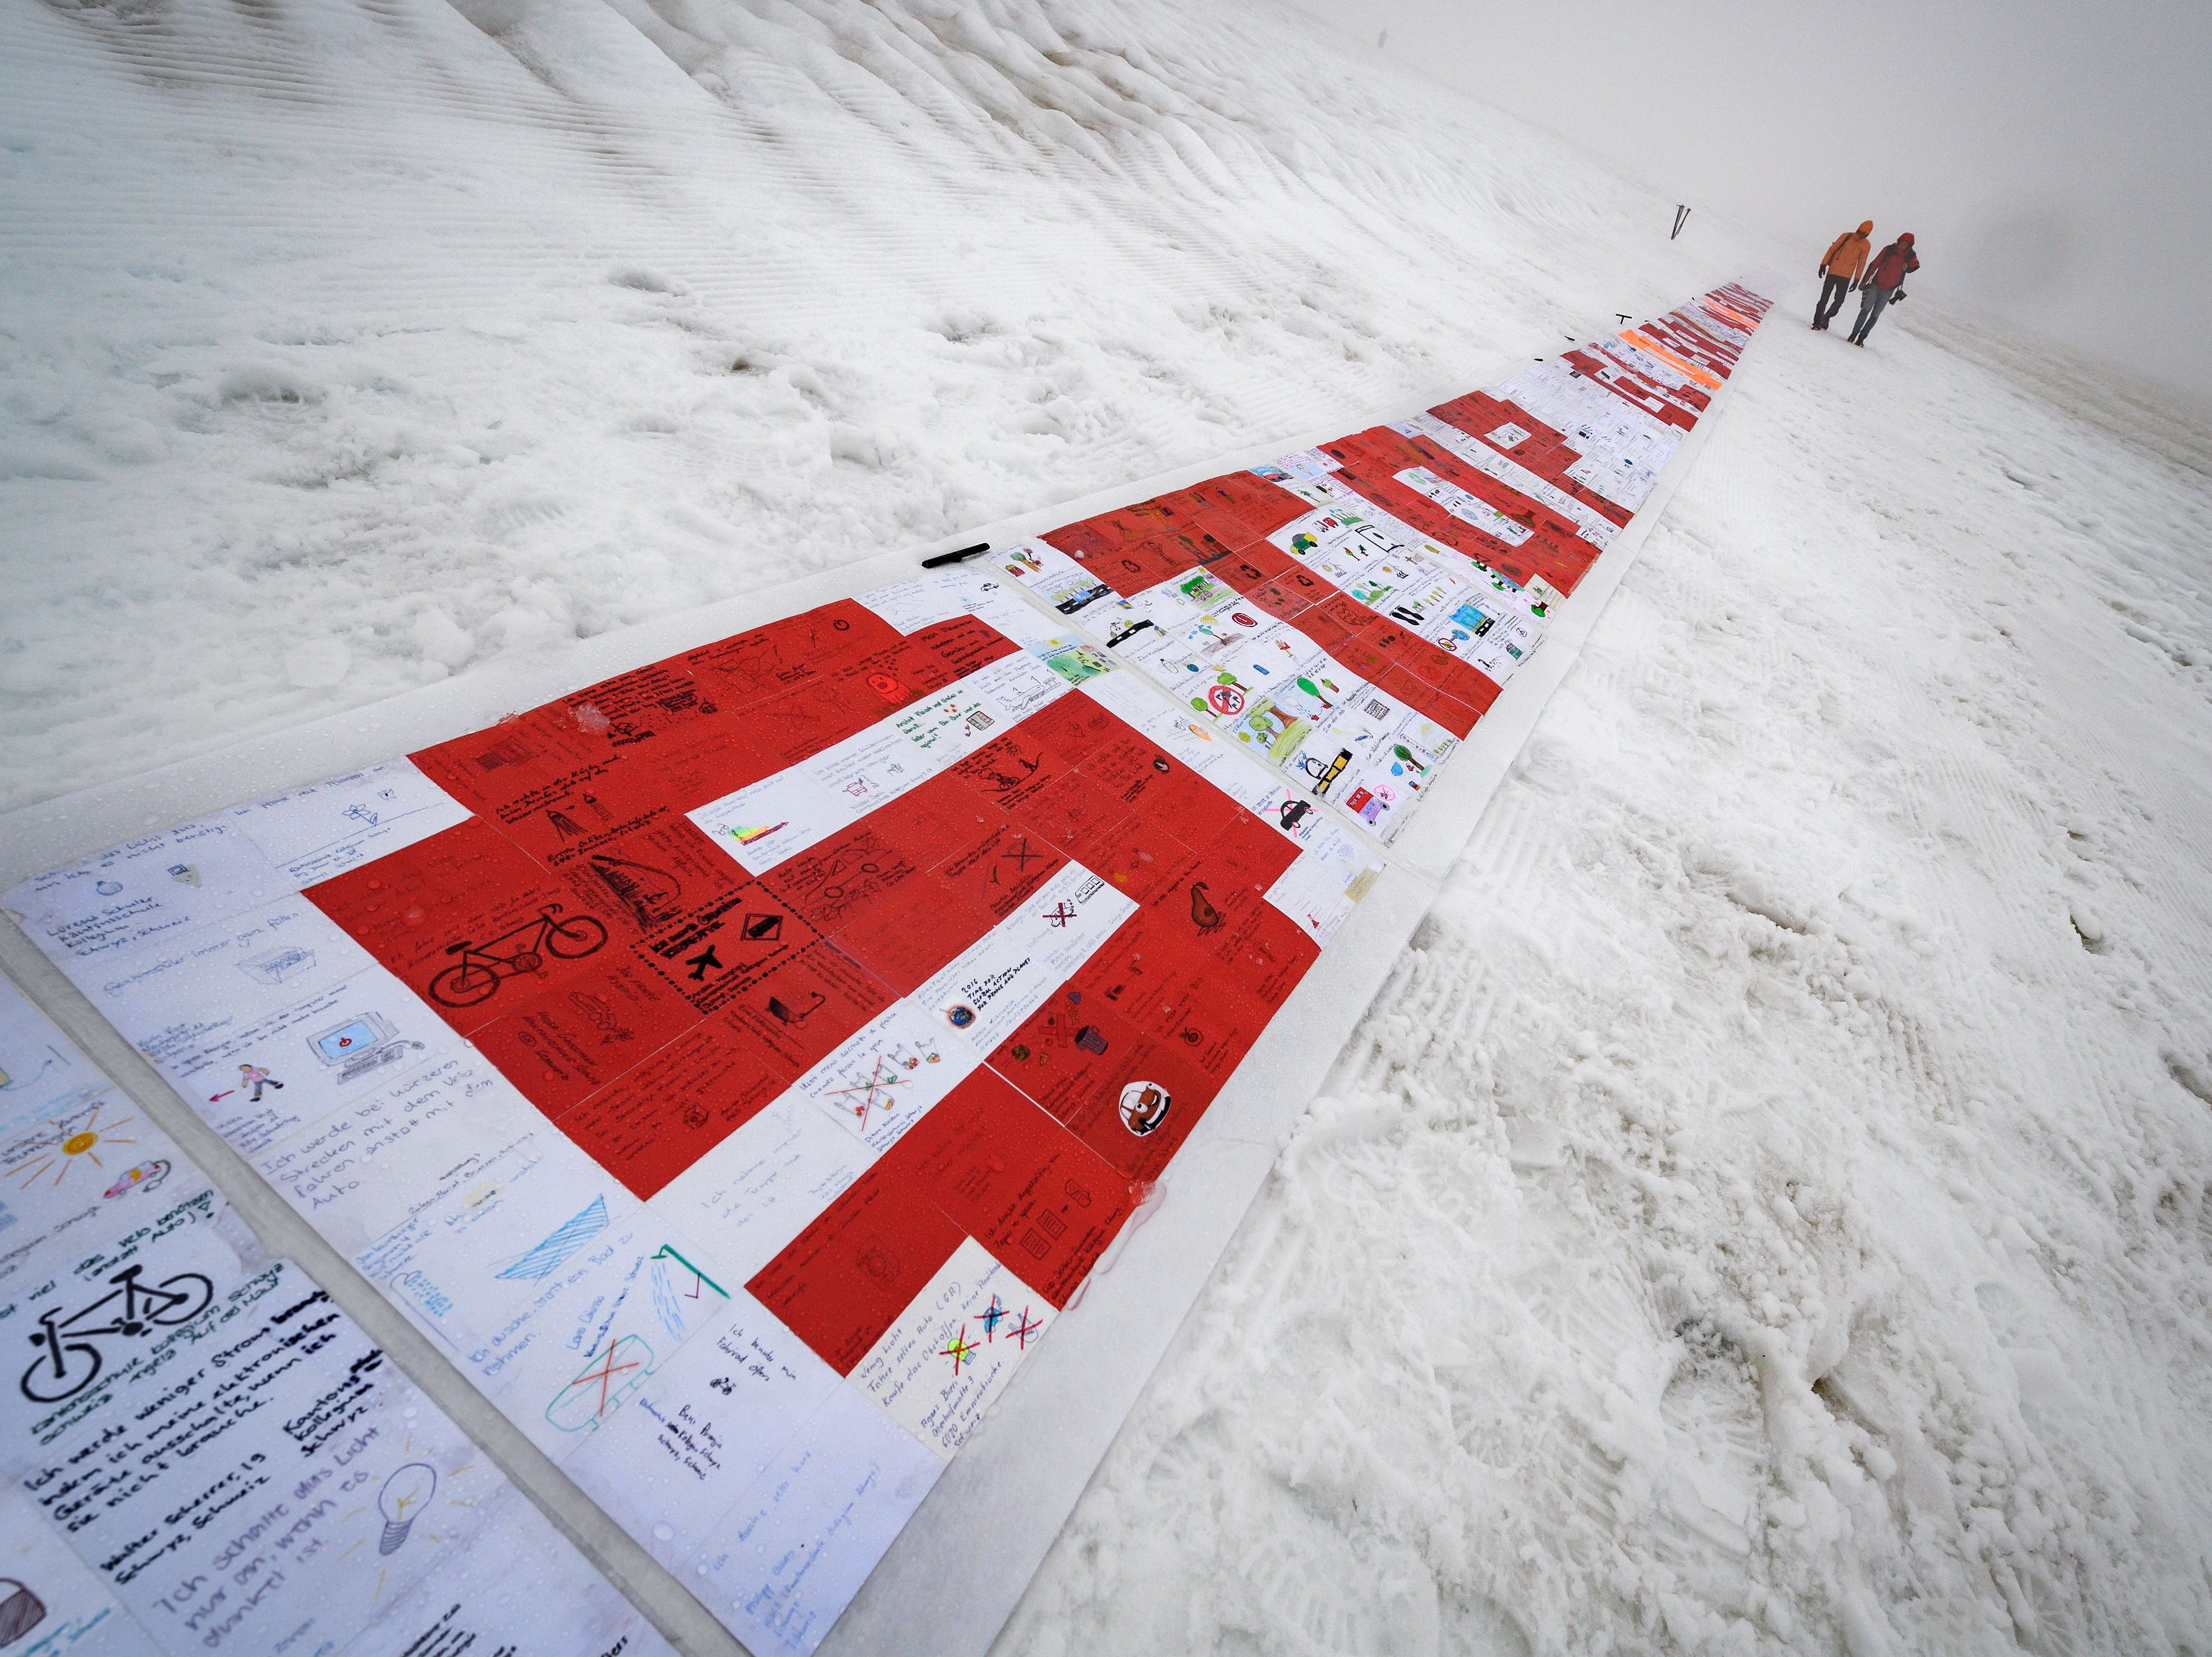 Aug. 13, 2018: Organizers walks past a giant roll made up of more than 2500 laminated postcards, put together to make up a message against climate change, during a test to see how to deploy the banner, in the Aletsch Glacier near the Jungfraujoch in the Swiss Alps. The test was organized to prepare a world record attempt of the largest postcard on the Alps longest glacier to kick off a global youth climate movement. Swiss Agency for Development and Cooperation  along with the WAVE foundation expect to create the largest postcard made up of at least 100,000 standard sized postcards.